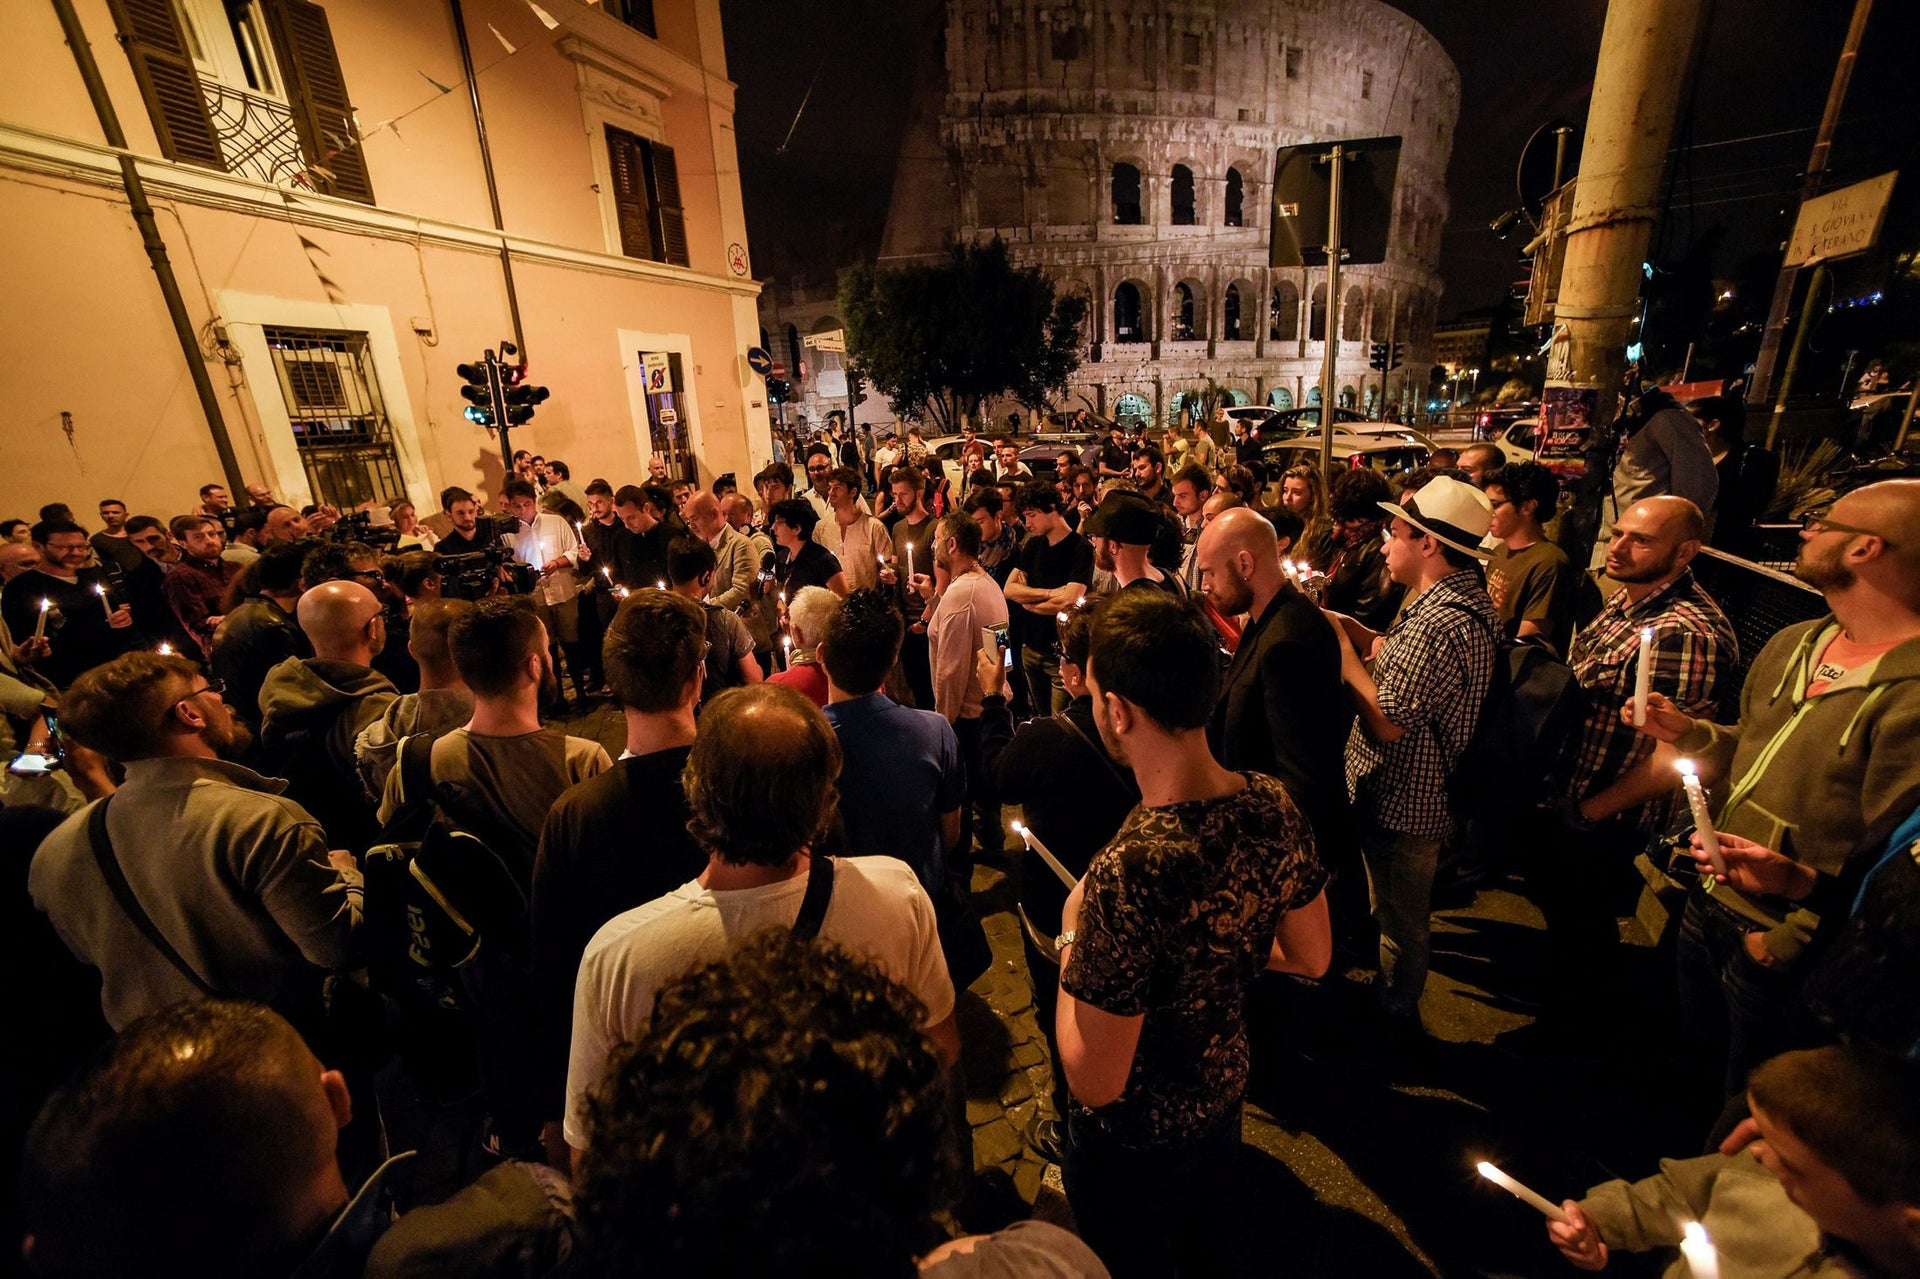 """Italian LGBT gay rights supporters hold candles as they take part in a ceremony in memory of the victims of the Orlando shooting, on June 12, 2016 in the """"Gay Street"""" gay- and lesbian-friendly neighborhood near Rome's Colosseum.  Fifty people were killed, in addition to the shooter, and 53 wounded in the worst mass shooting in US history, the mayor of Orlando Buddy Dyer said earlier on June 12. A fighter from the Islamic State group carried out the mass shooting, the IS-linked news agency Amaq said, quoting an unidentified source."""